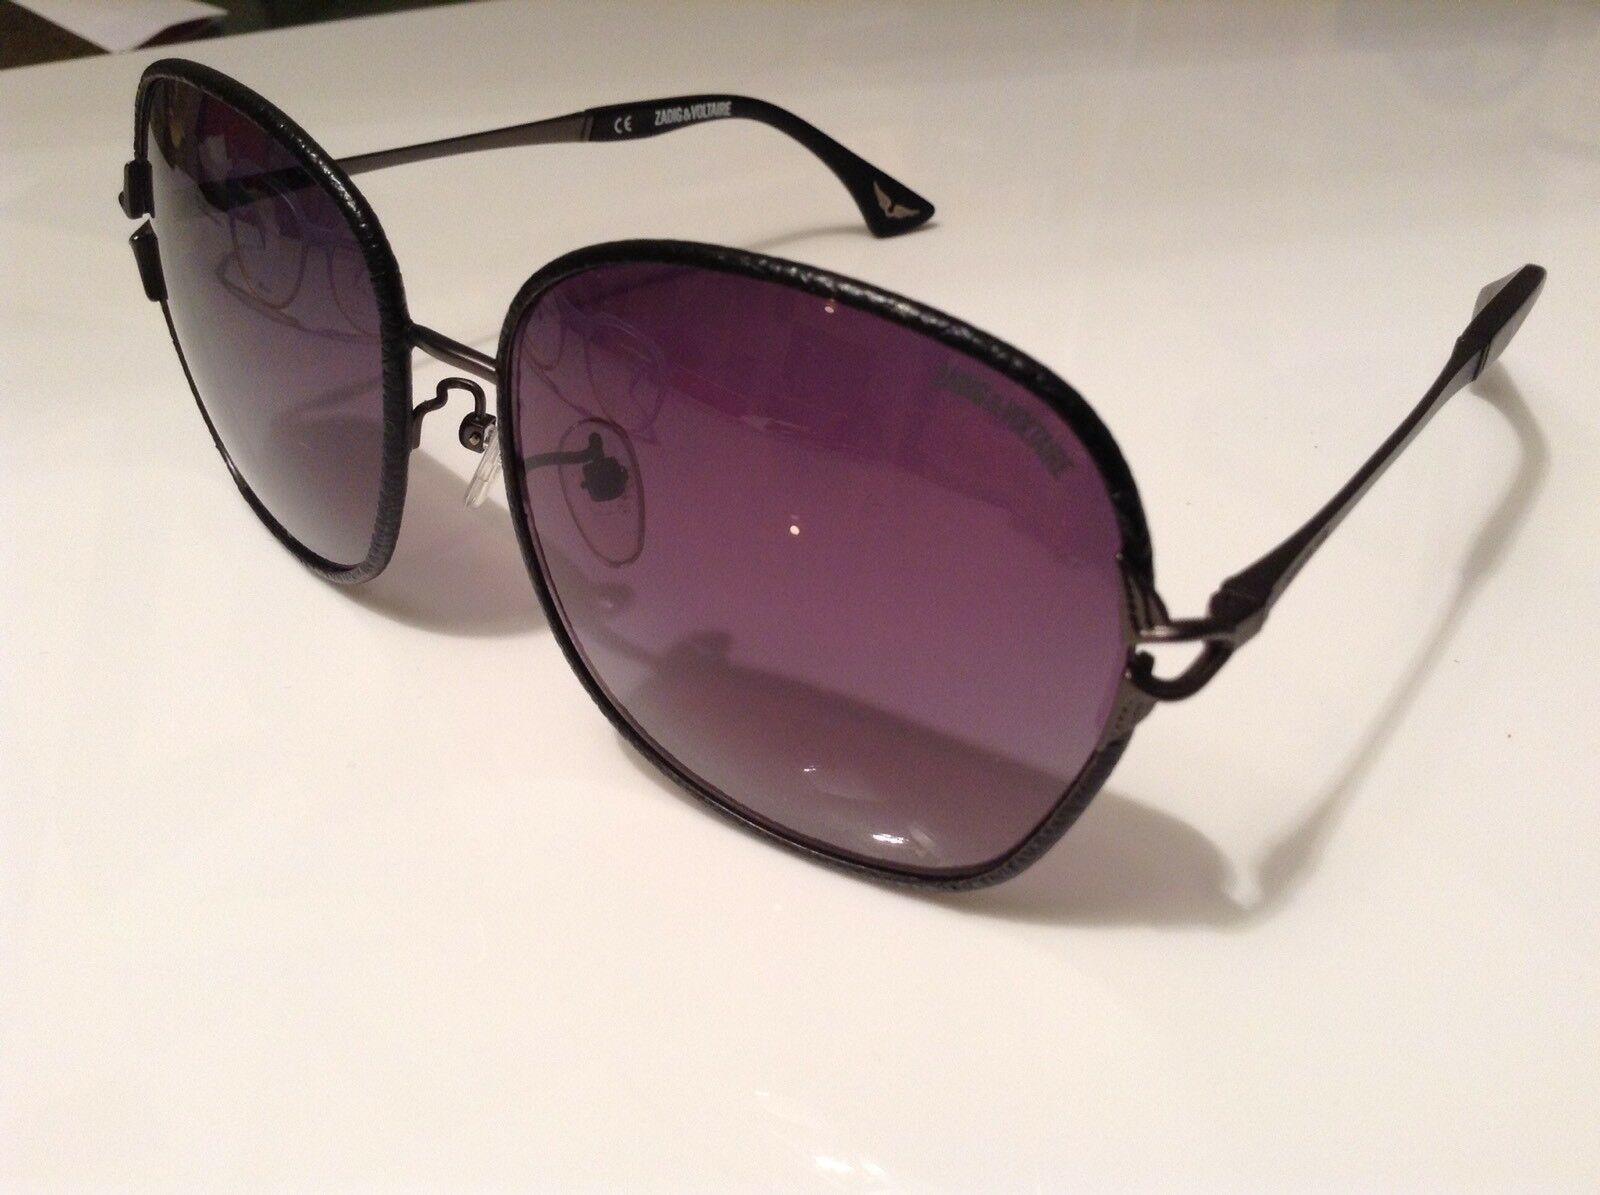 BNWTT 100% auth Zadig Voltaire RARE Black Leather sunglasses with logo RRP